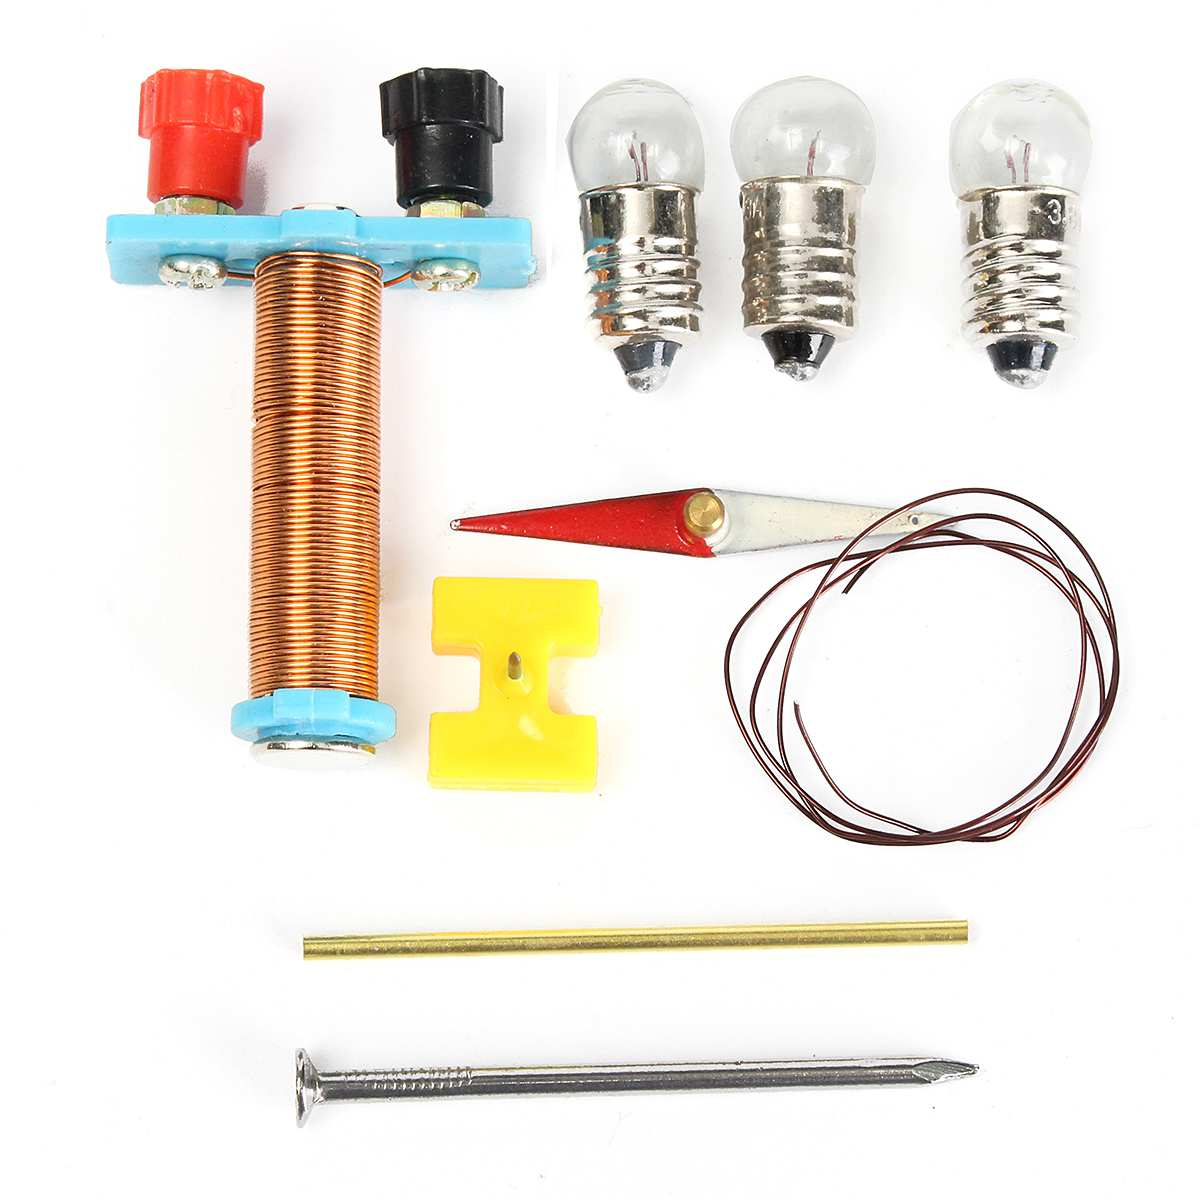 Physics Experiments Electricity Learn Test Electromagnetic Equipment Diy Science Experiment For Student Children In From Office School